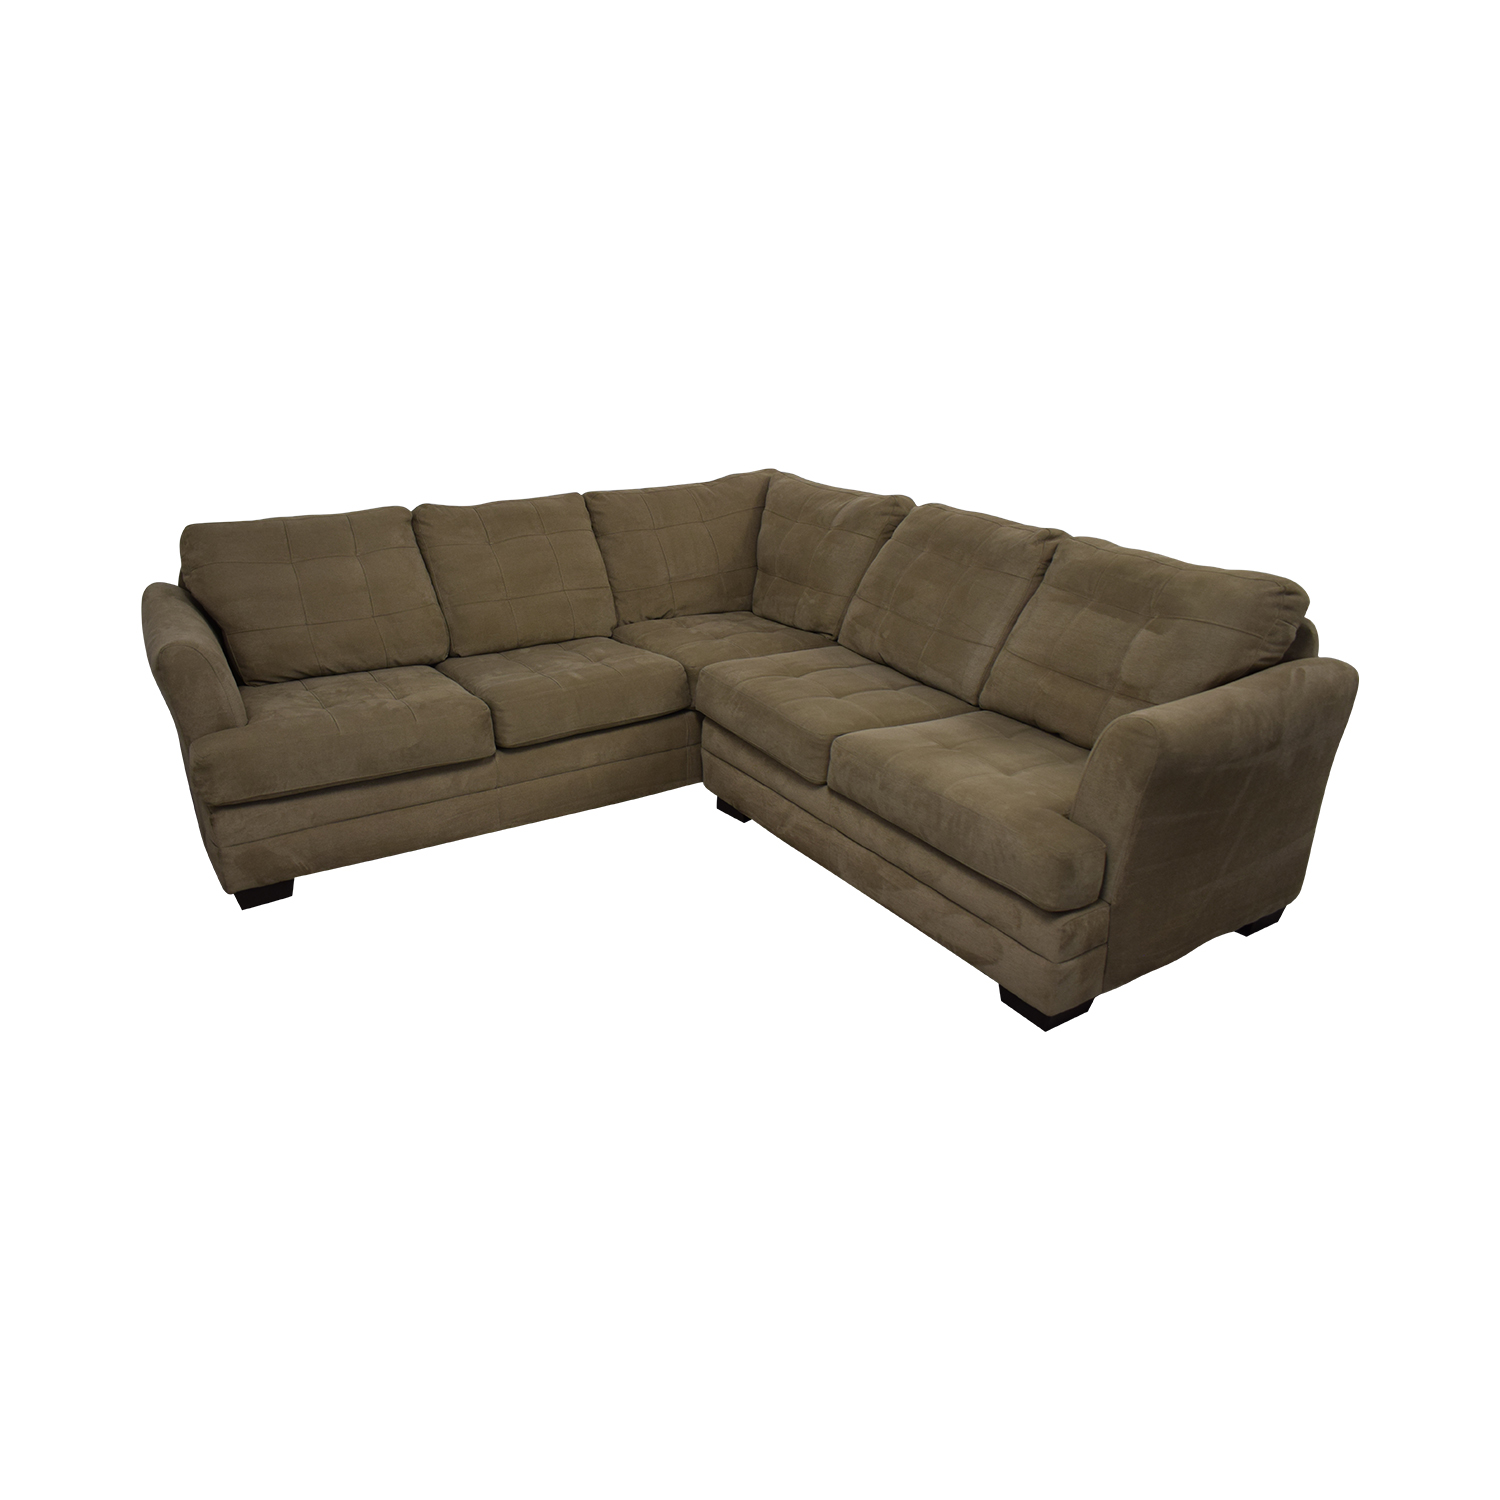 Raymour & Flanigan Sectional sale